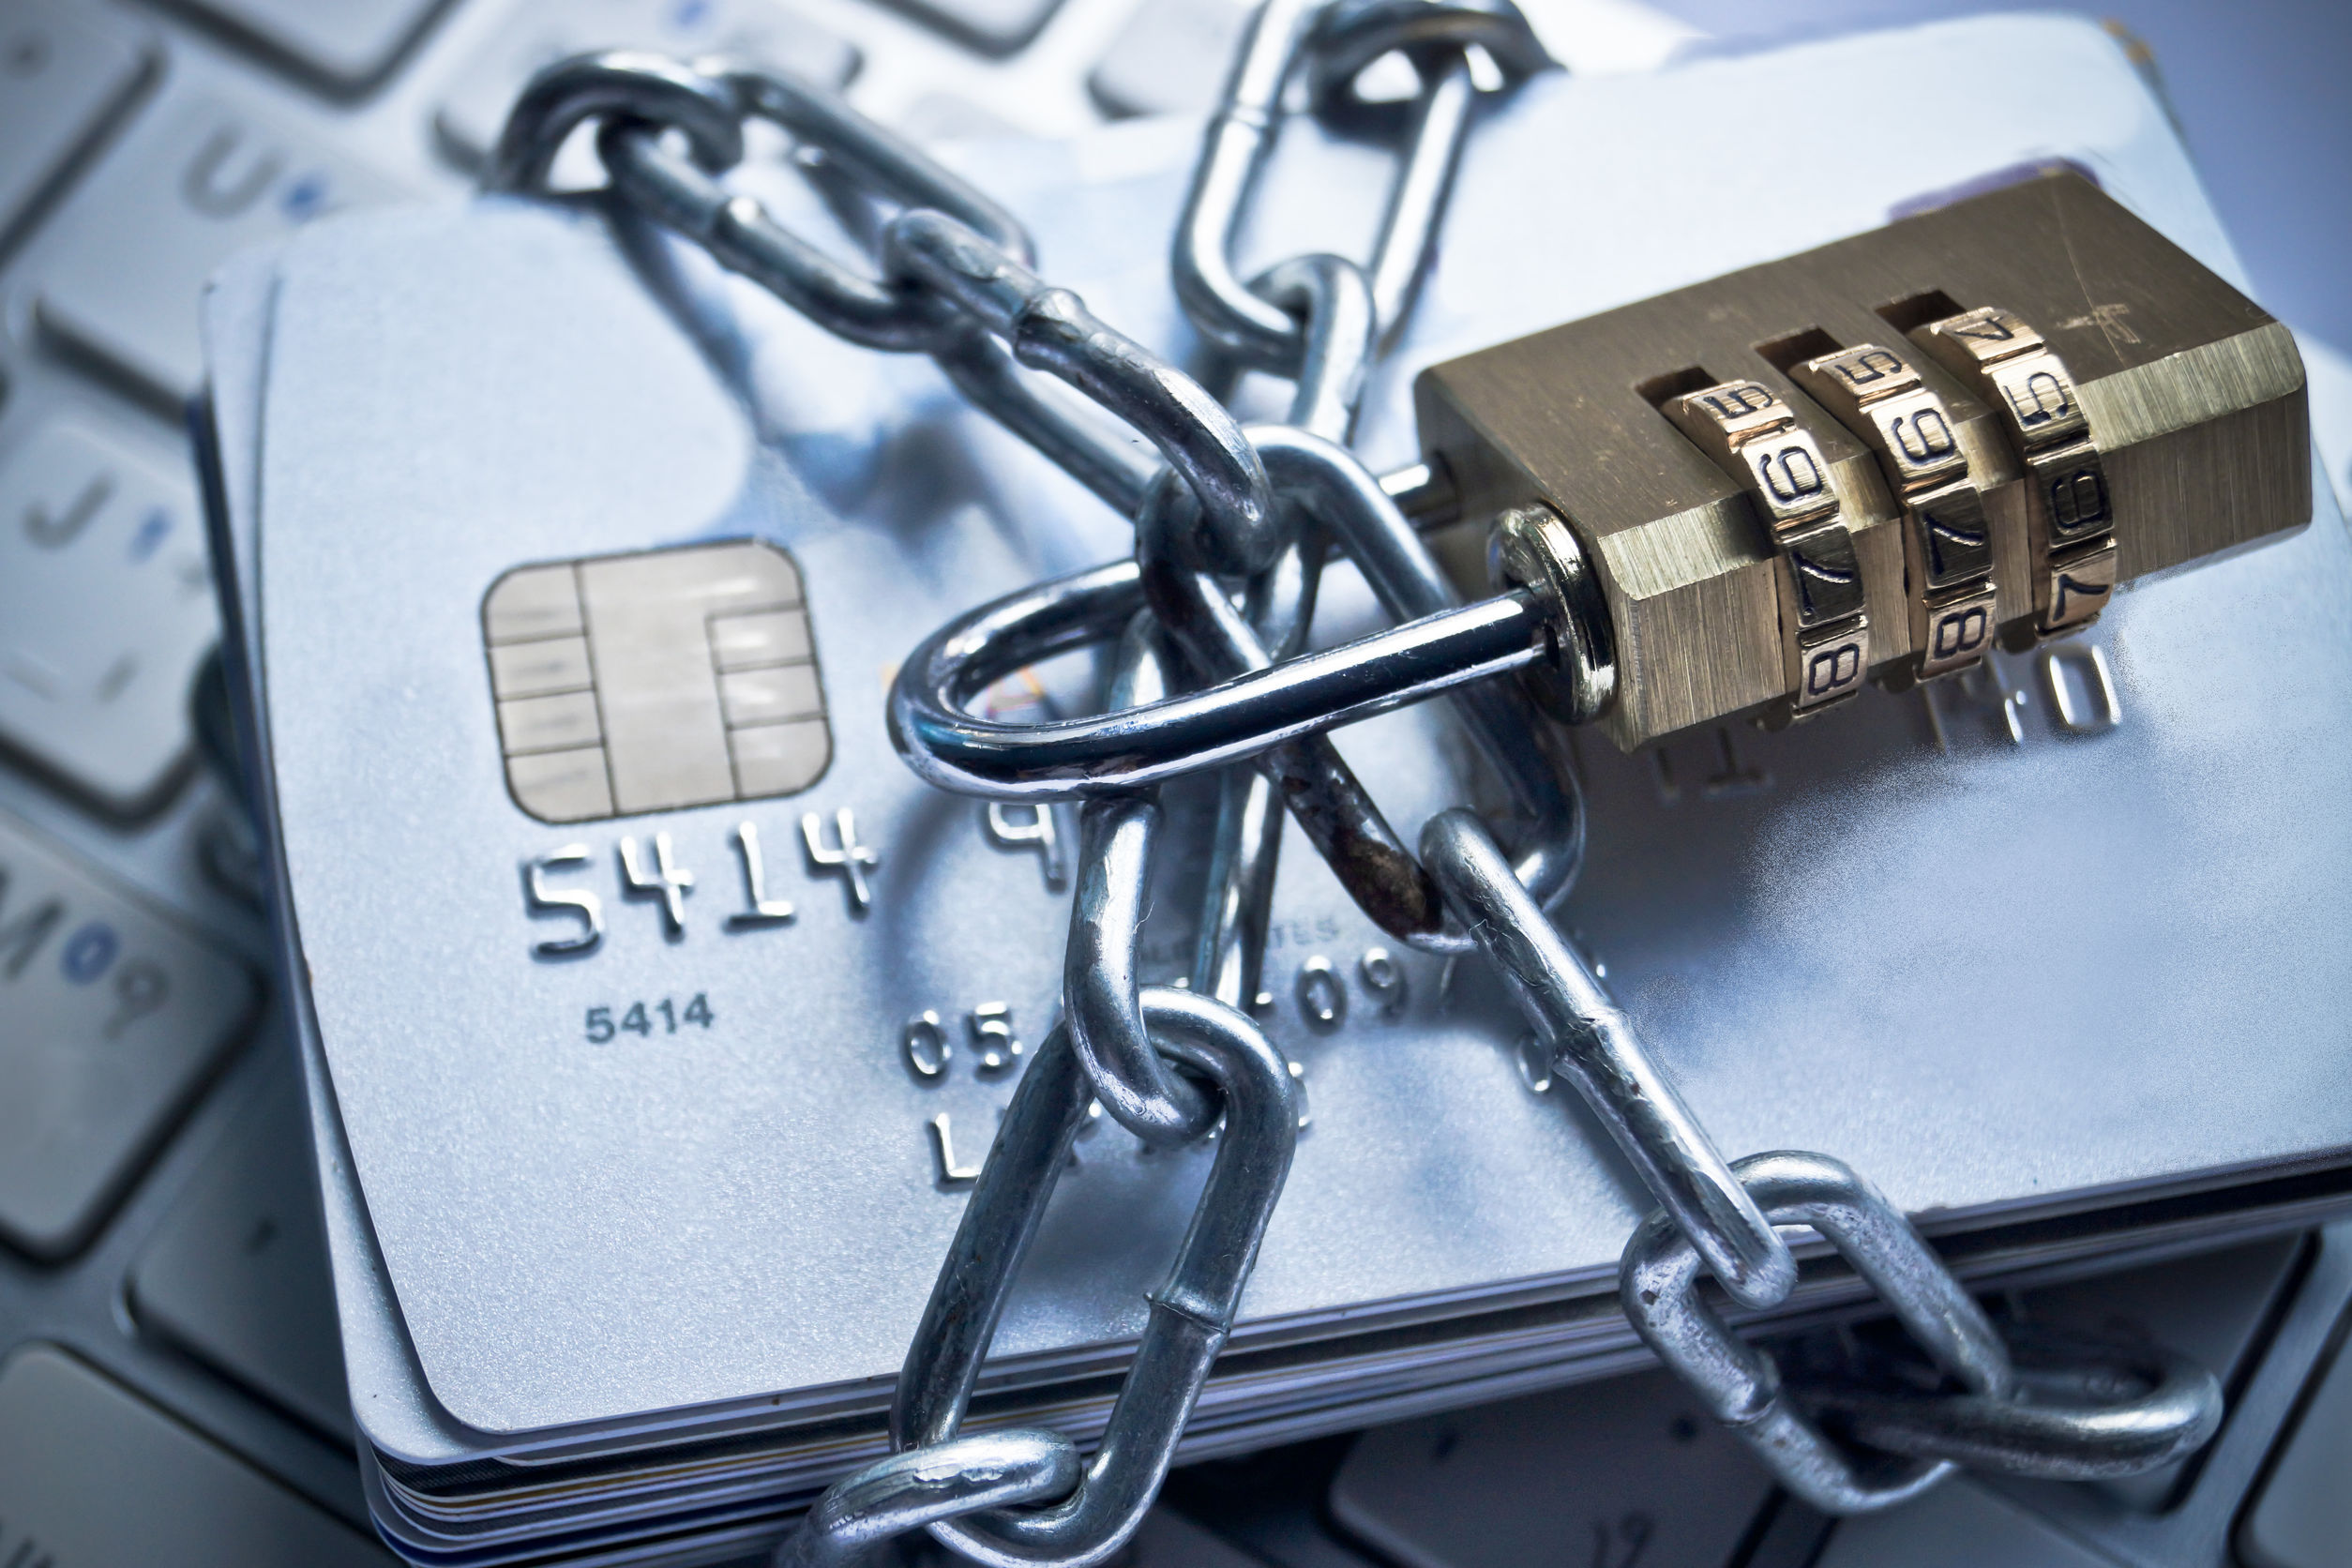 Preventing Credit Card Fraud - Waller and Wax Advisors